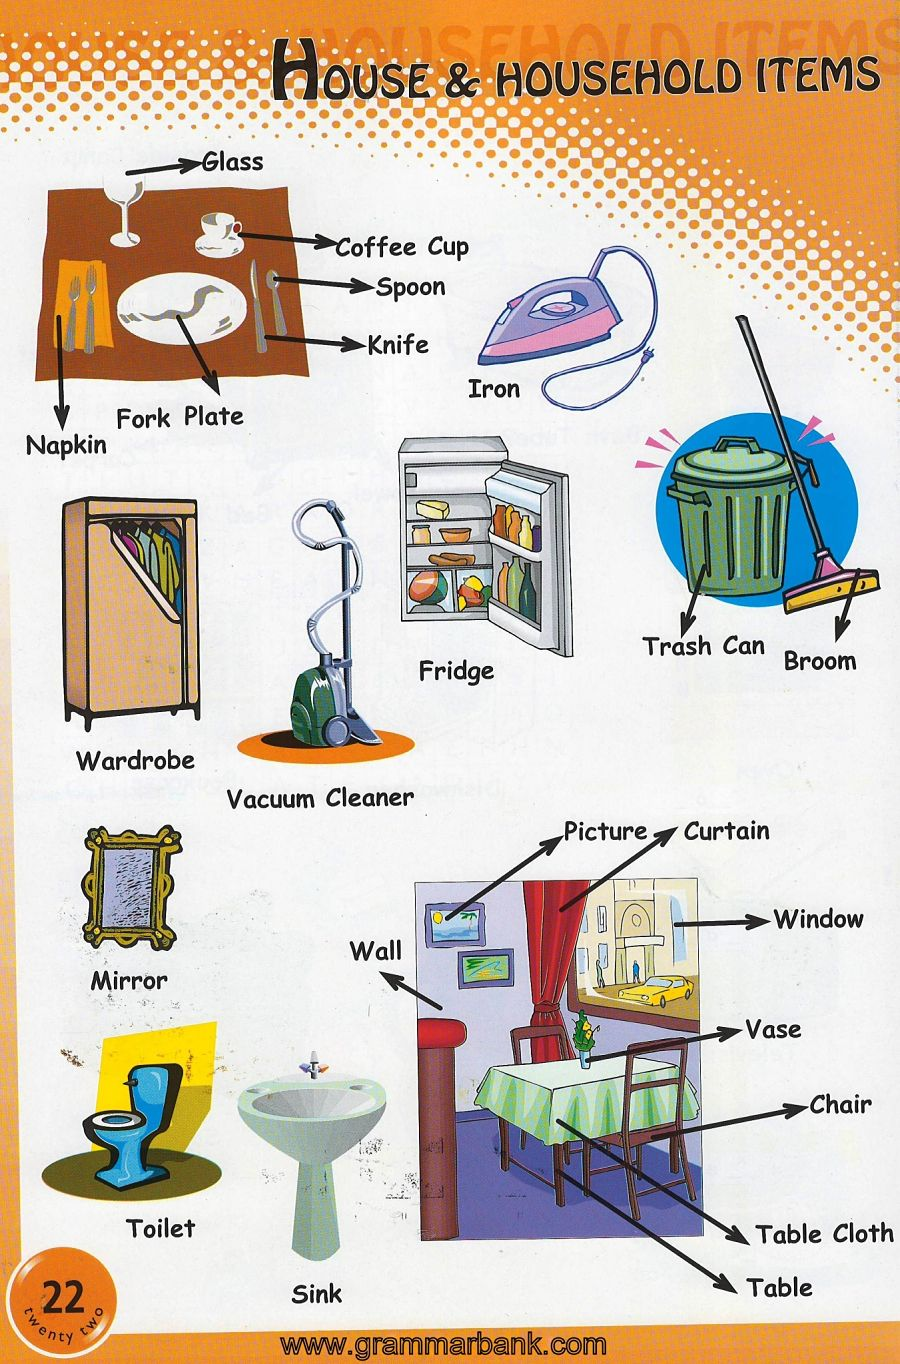 Household Articles